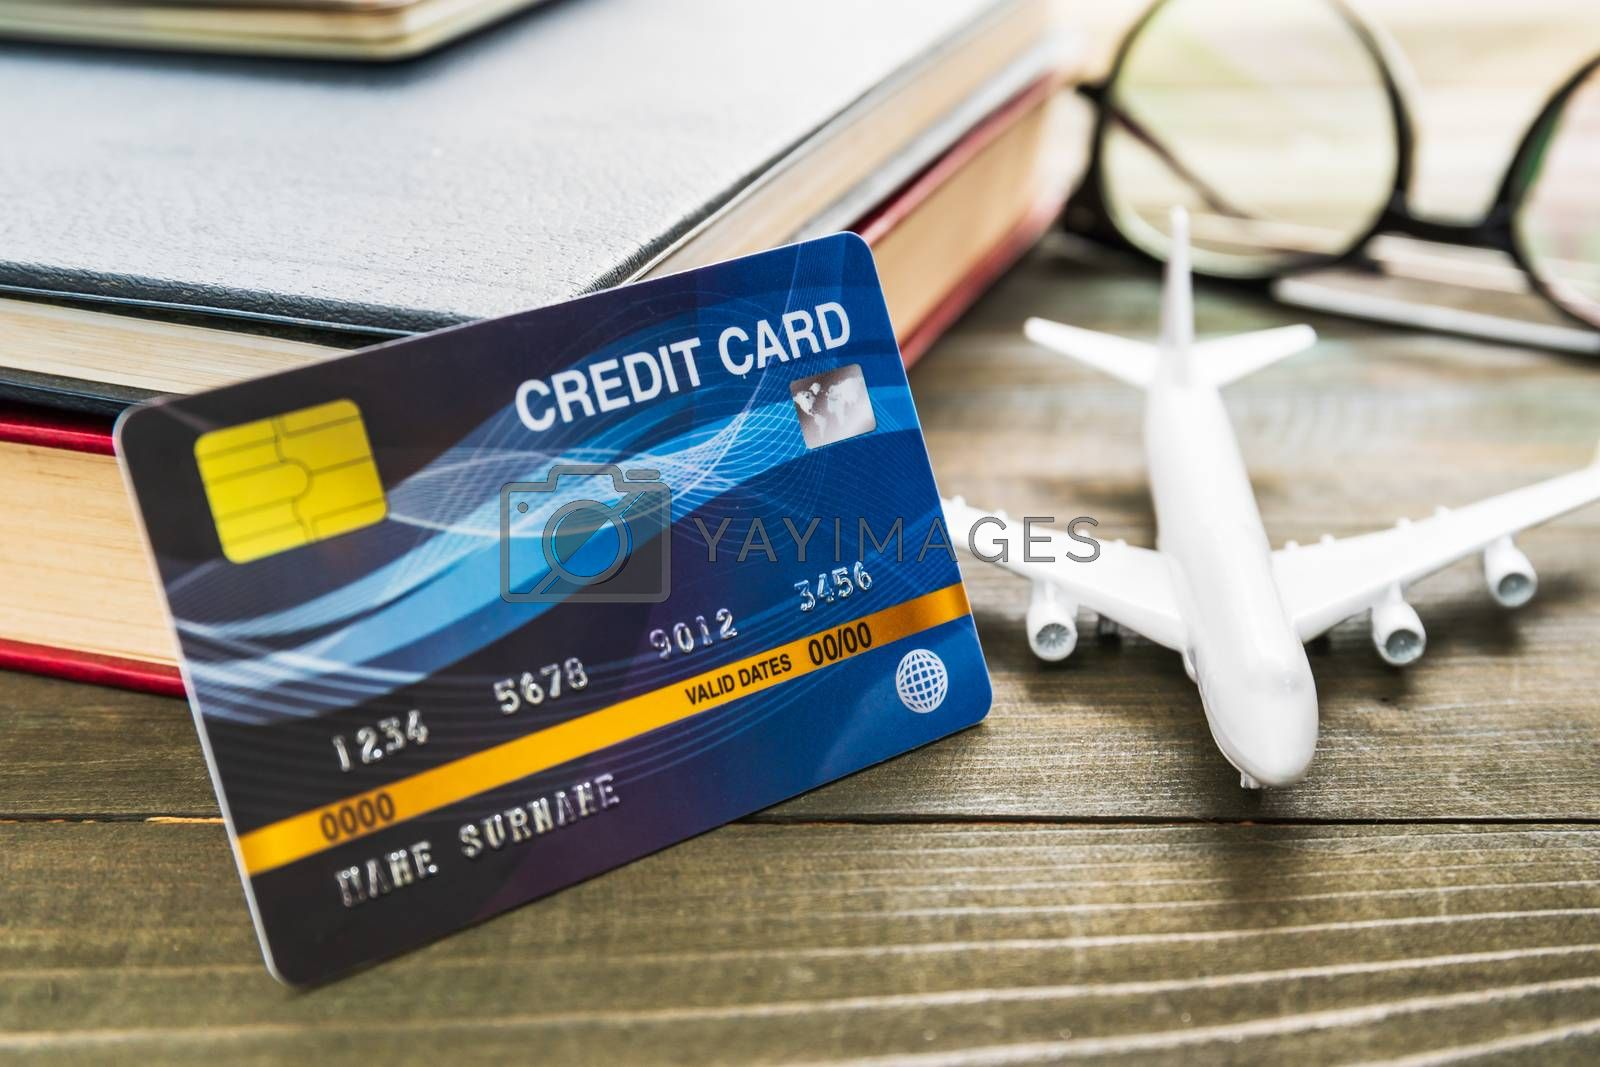 Credit card and airplane model on wooden table , Preparation for Traveling concept